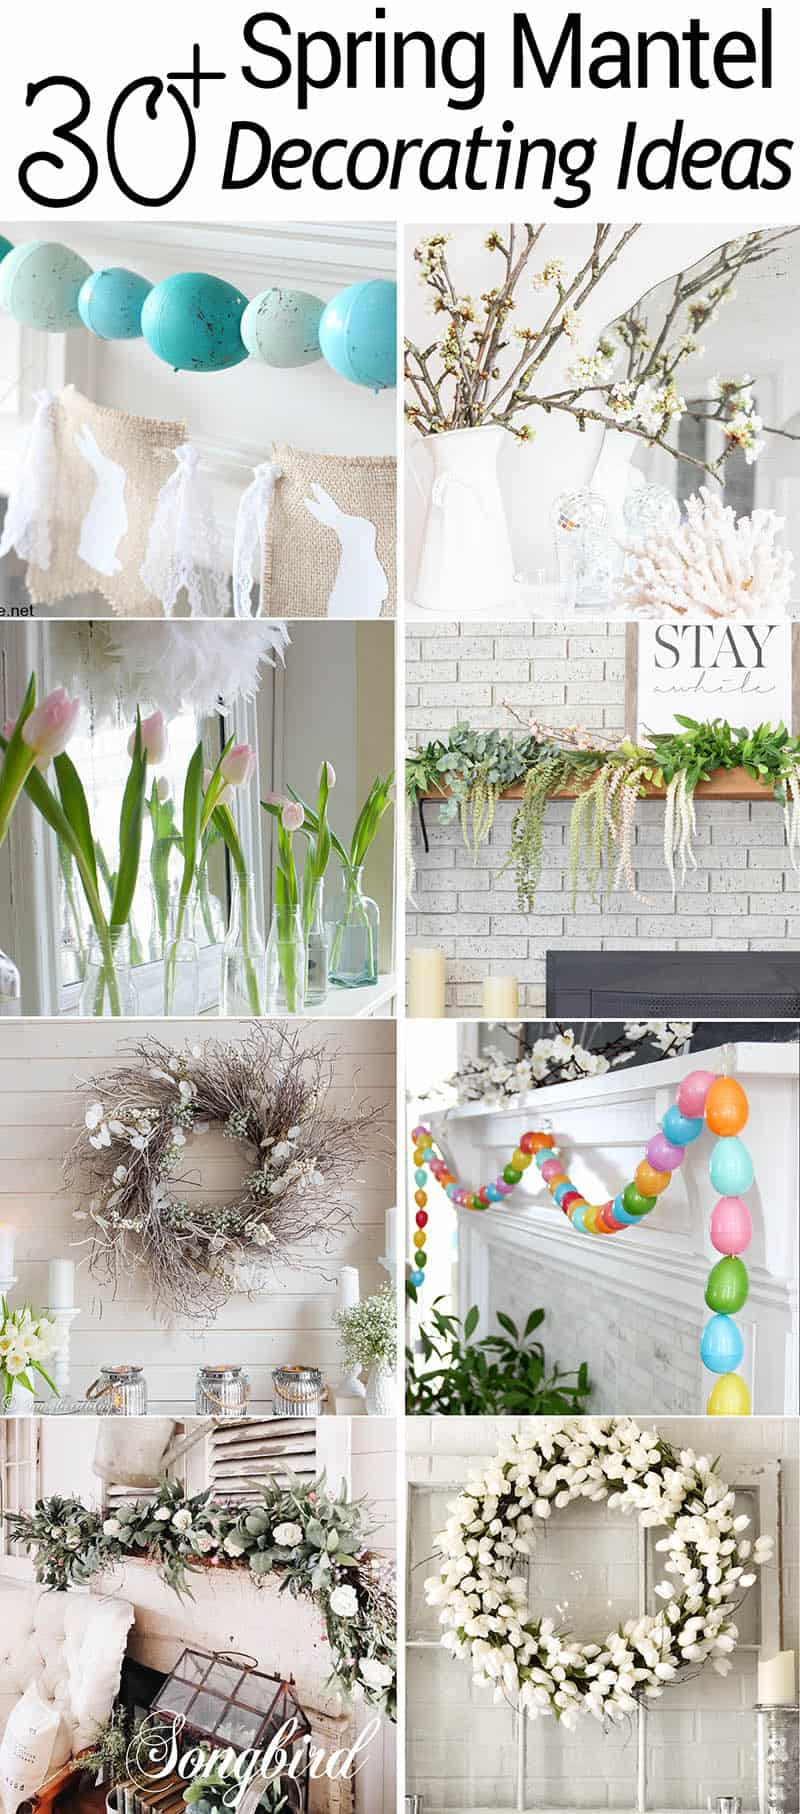 collage image of Spring mantels